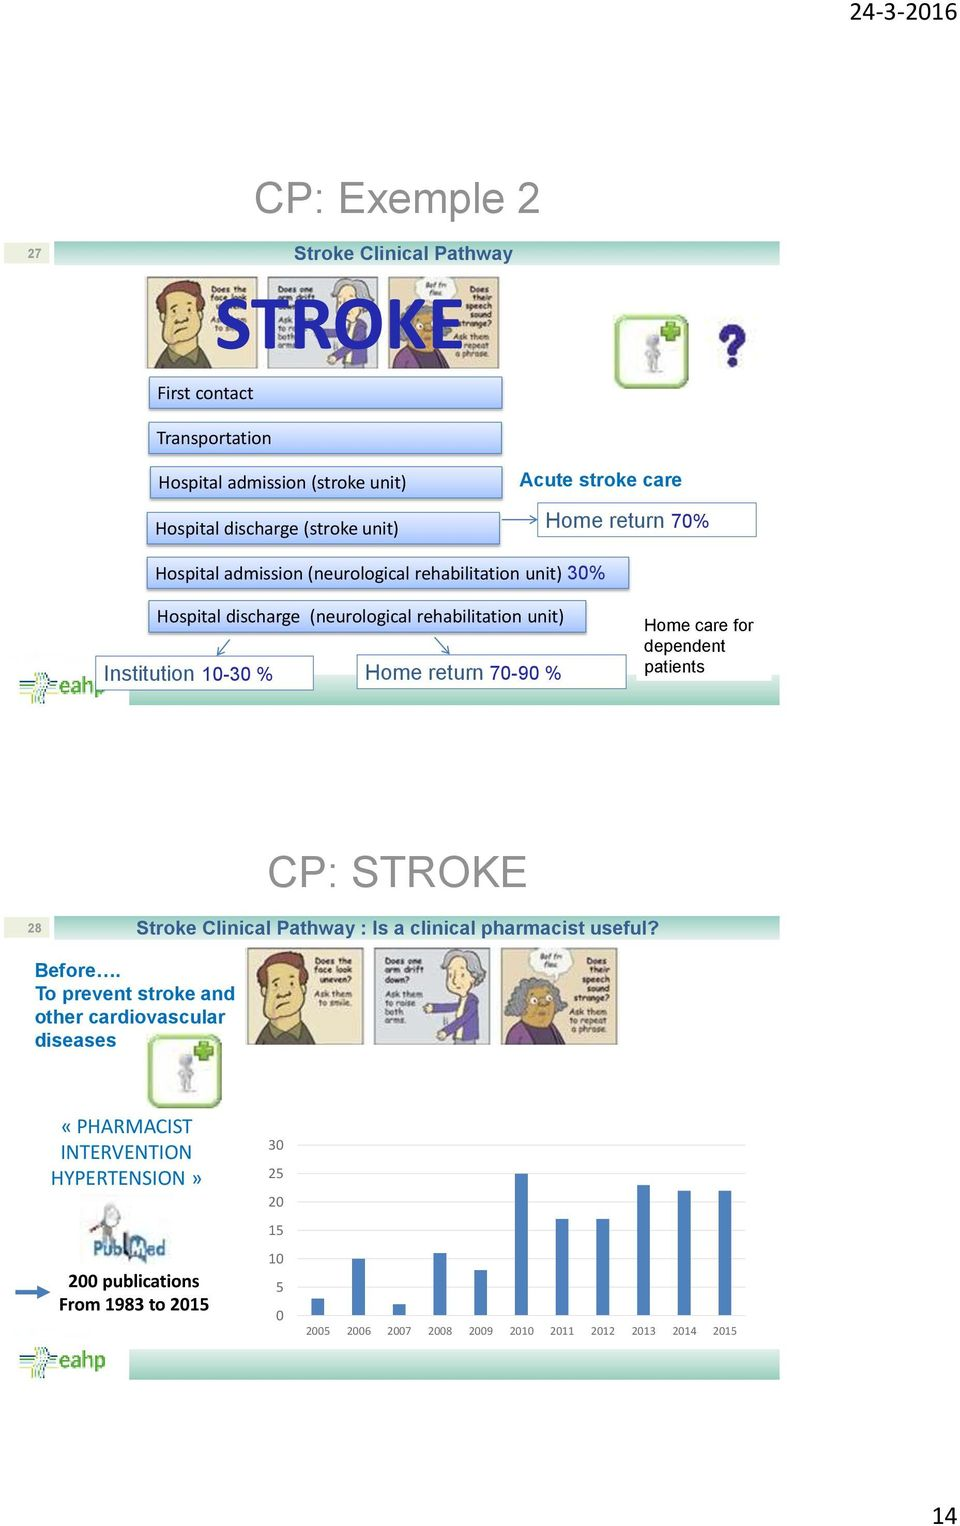 return 70-90 % Home care for dependent patients 28 Stroke Clinical Pathway : Is a clinical pharmacist useful? Before.